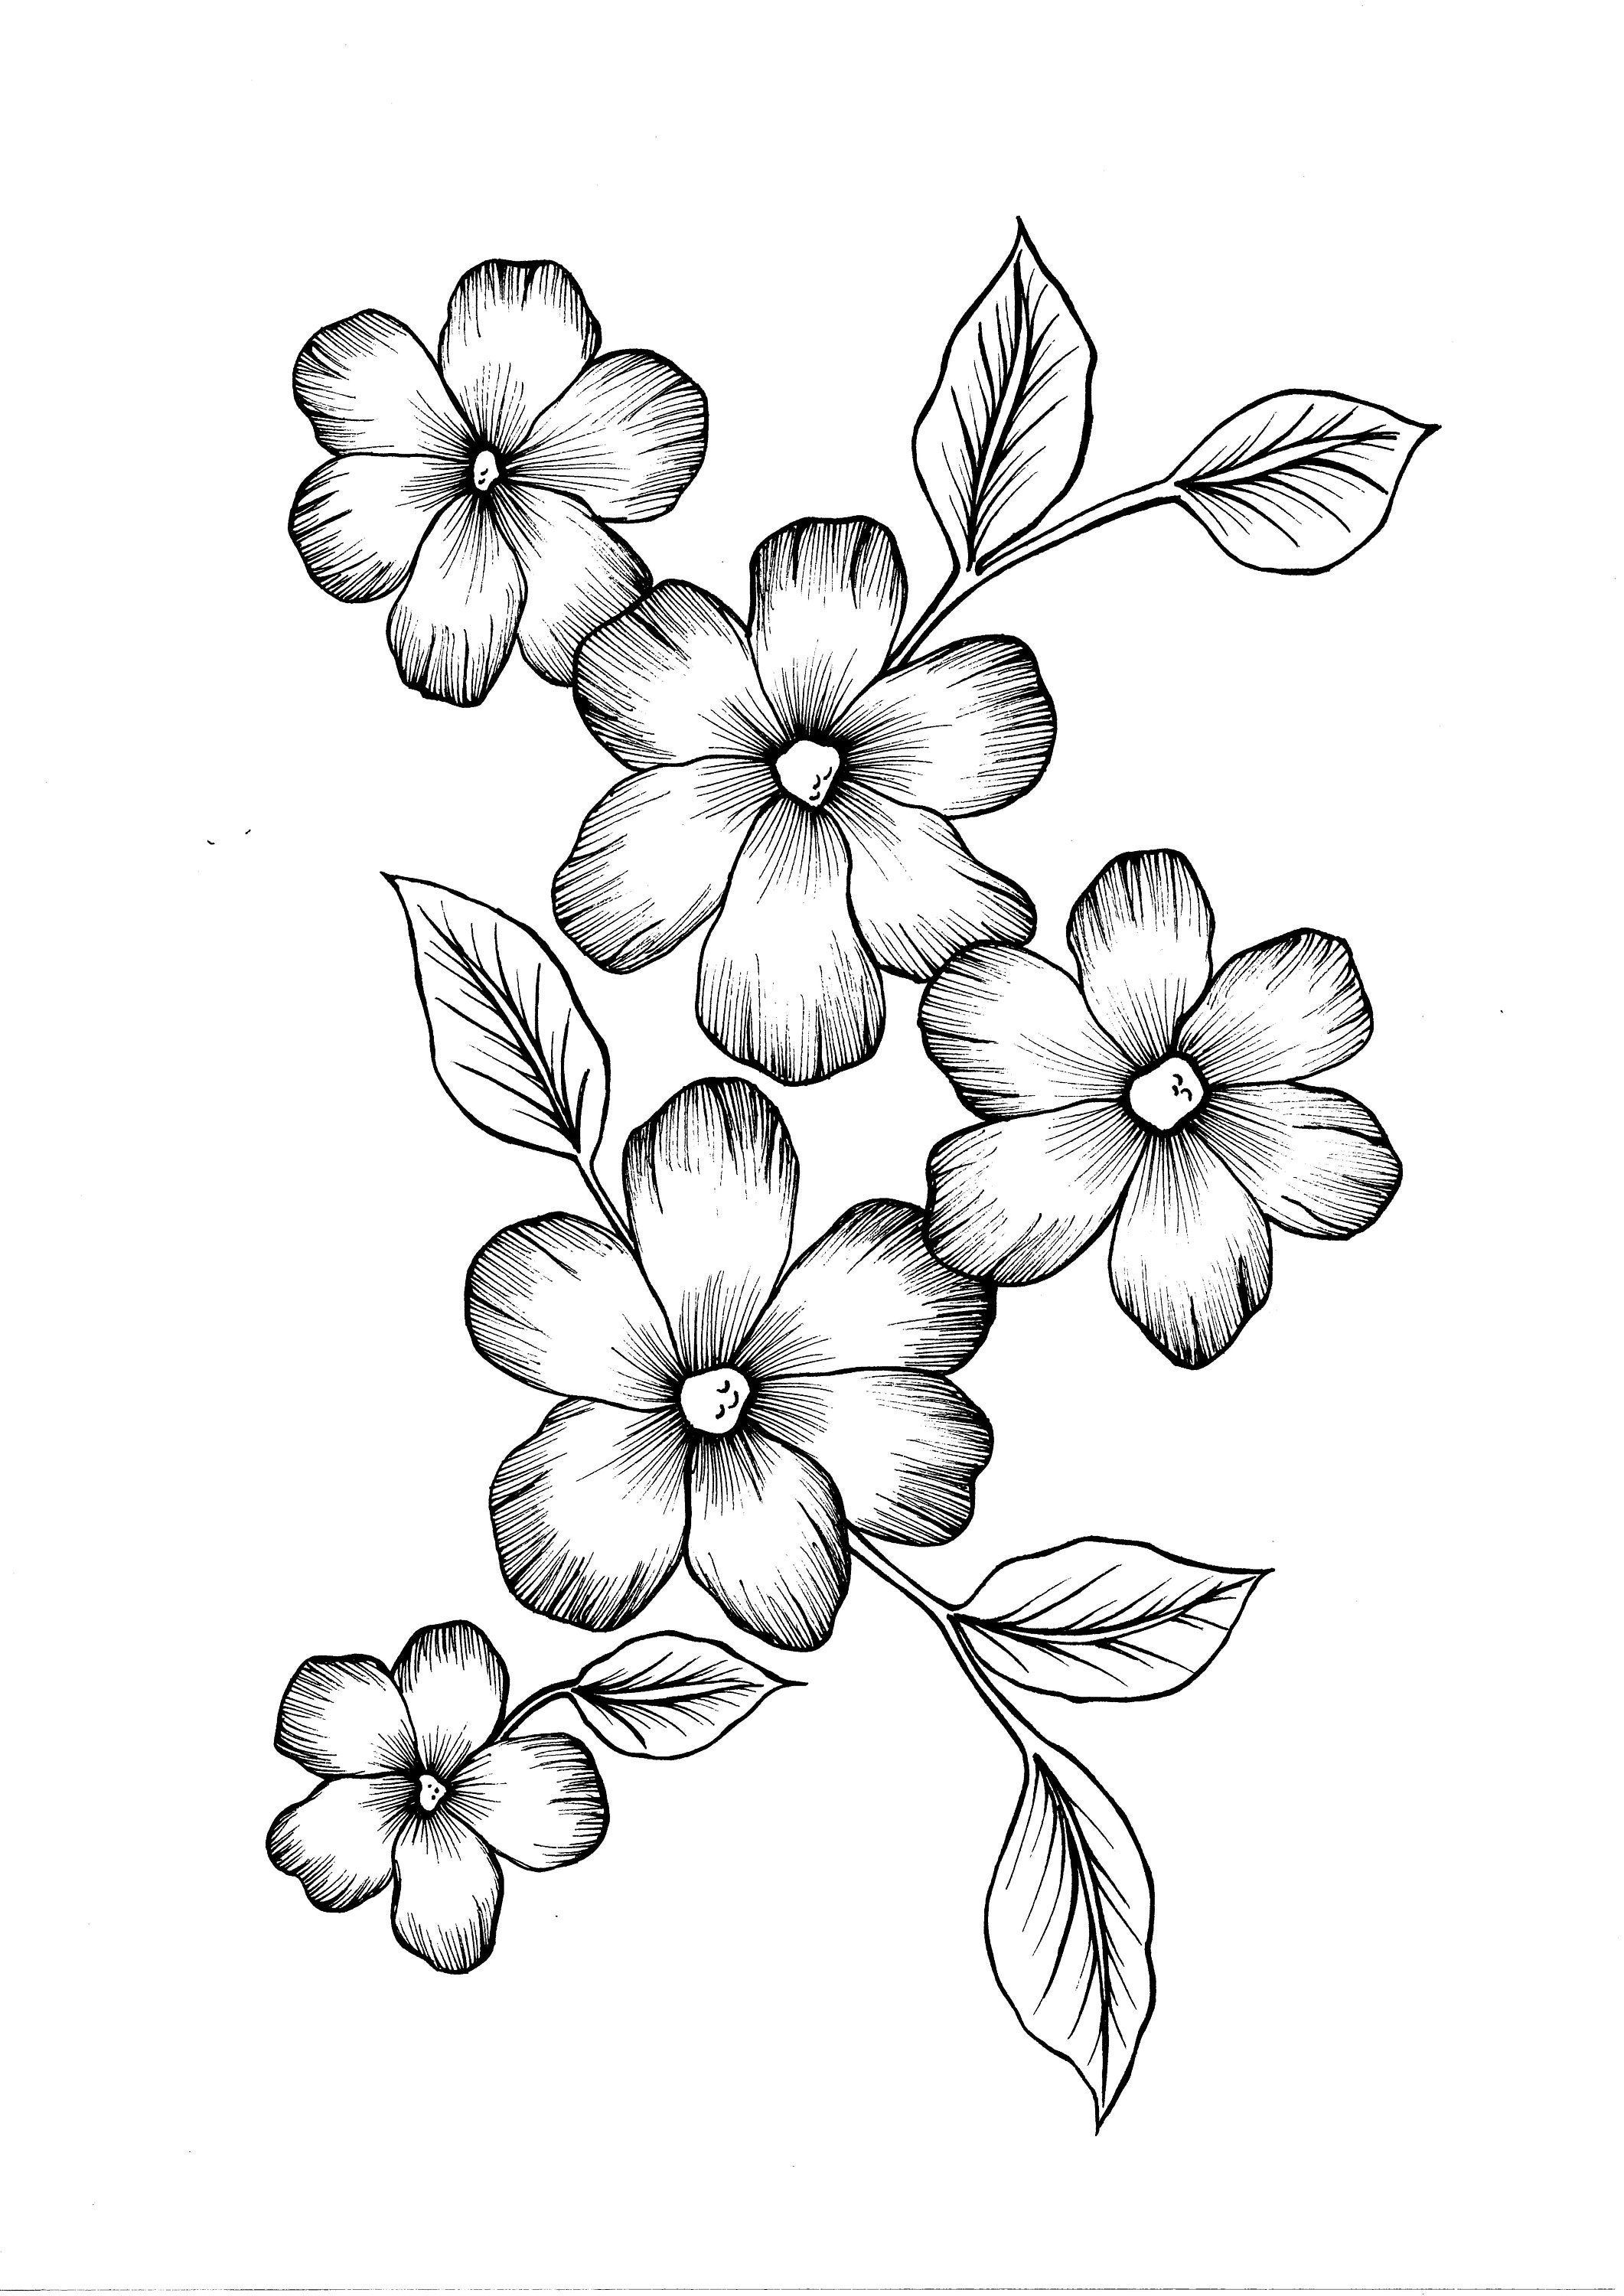 Pin on Flower art drawing